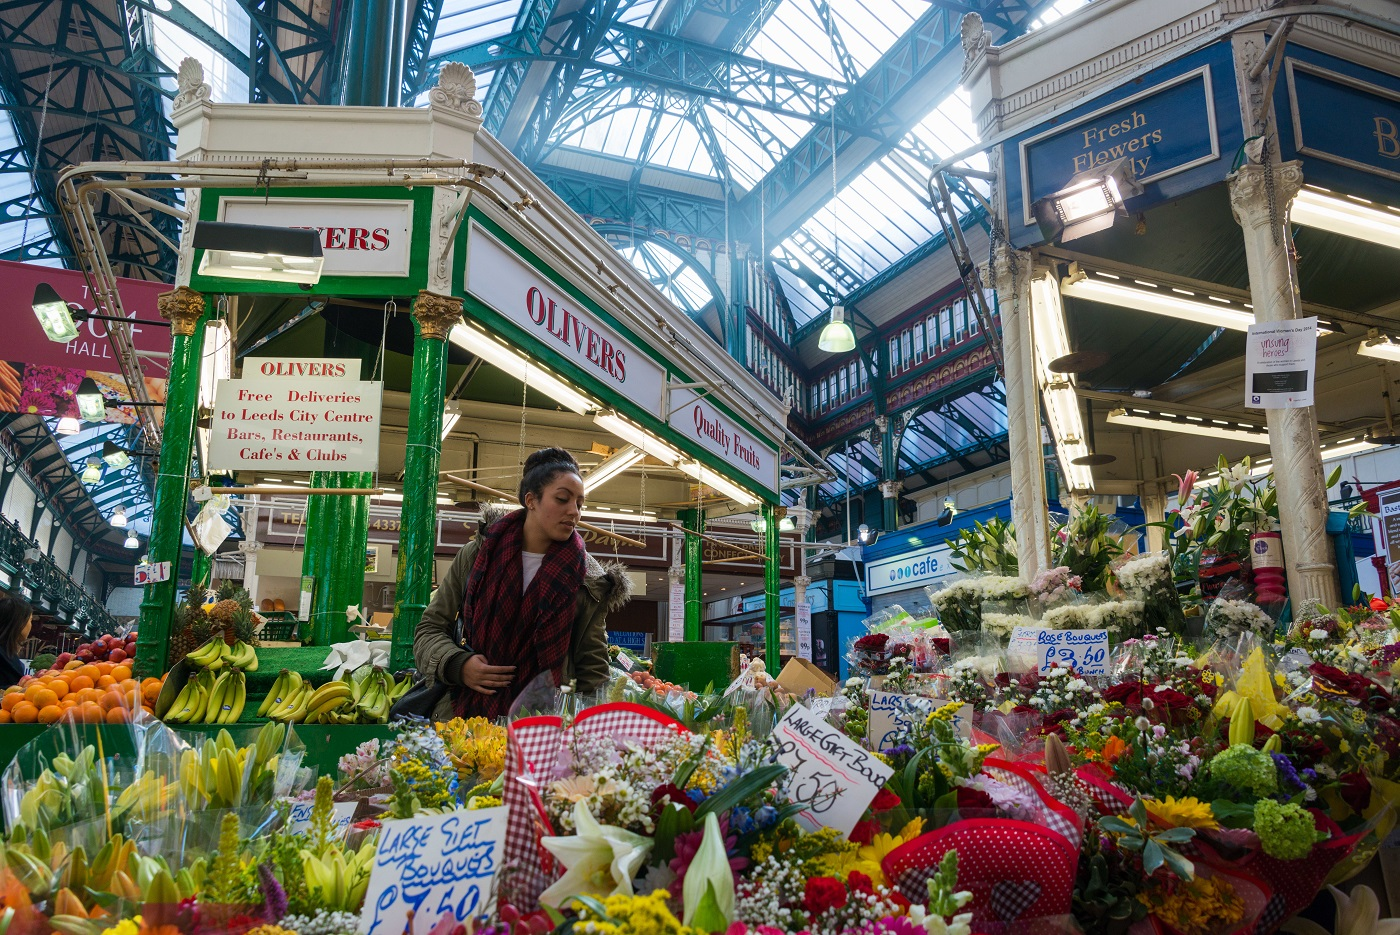 Flower stall in Leeds City Market, © Diana Jarvis